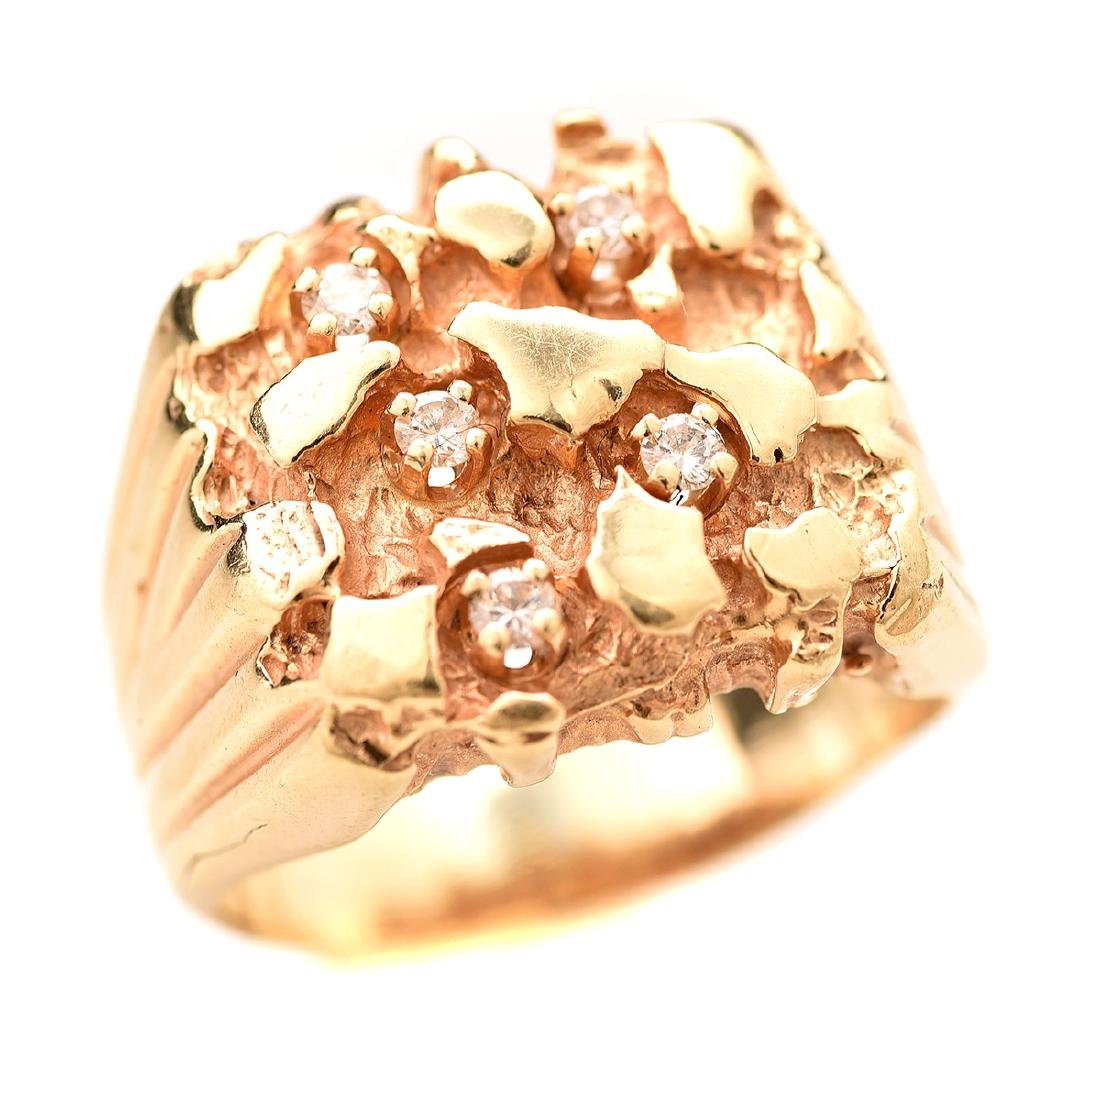 Diamond, 14k Yellow Gold Man's Ring.